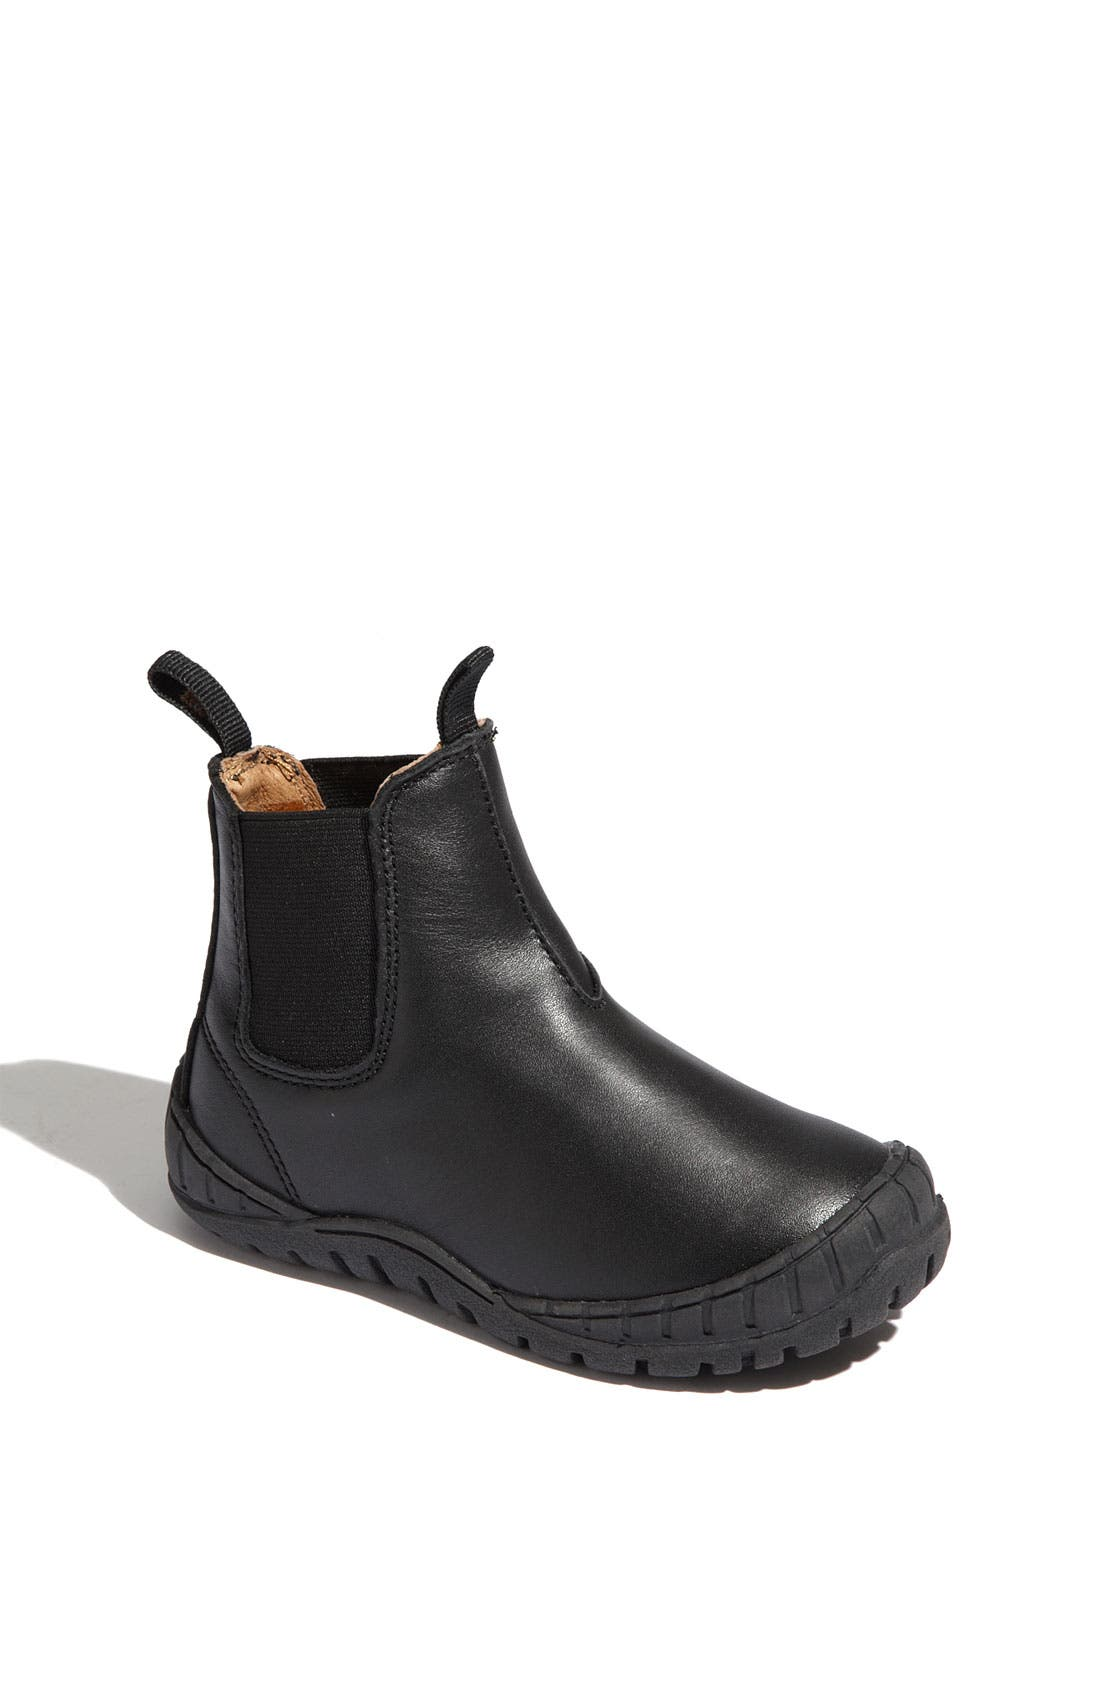 Alternate Image 1 Selected - Umi 'Reeves' Boot (Toddler, Little Kid & Big Kid)